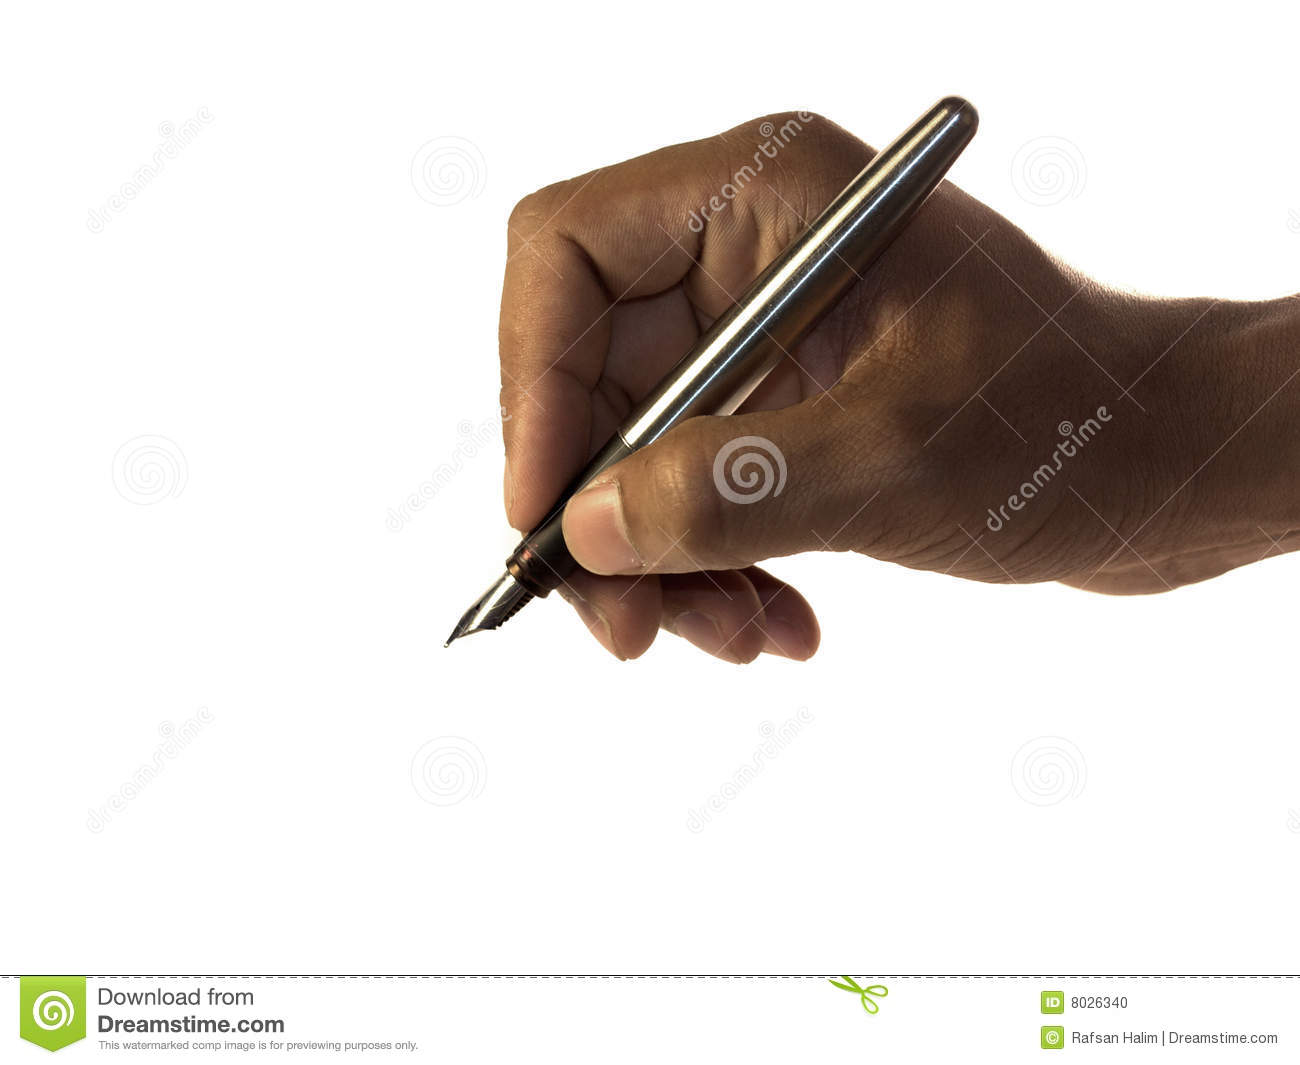 how to hold a pen with stability